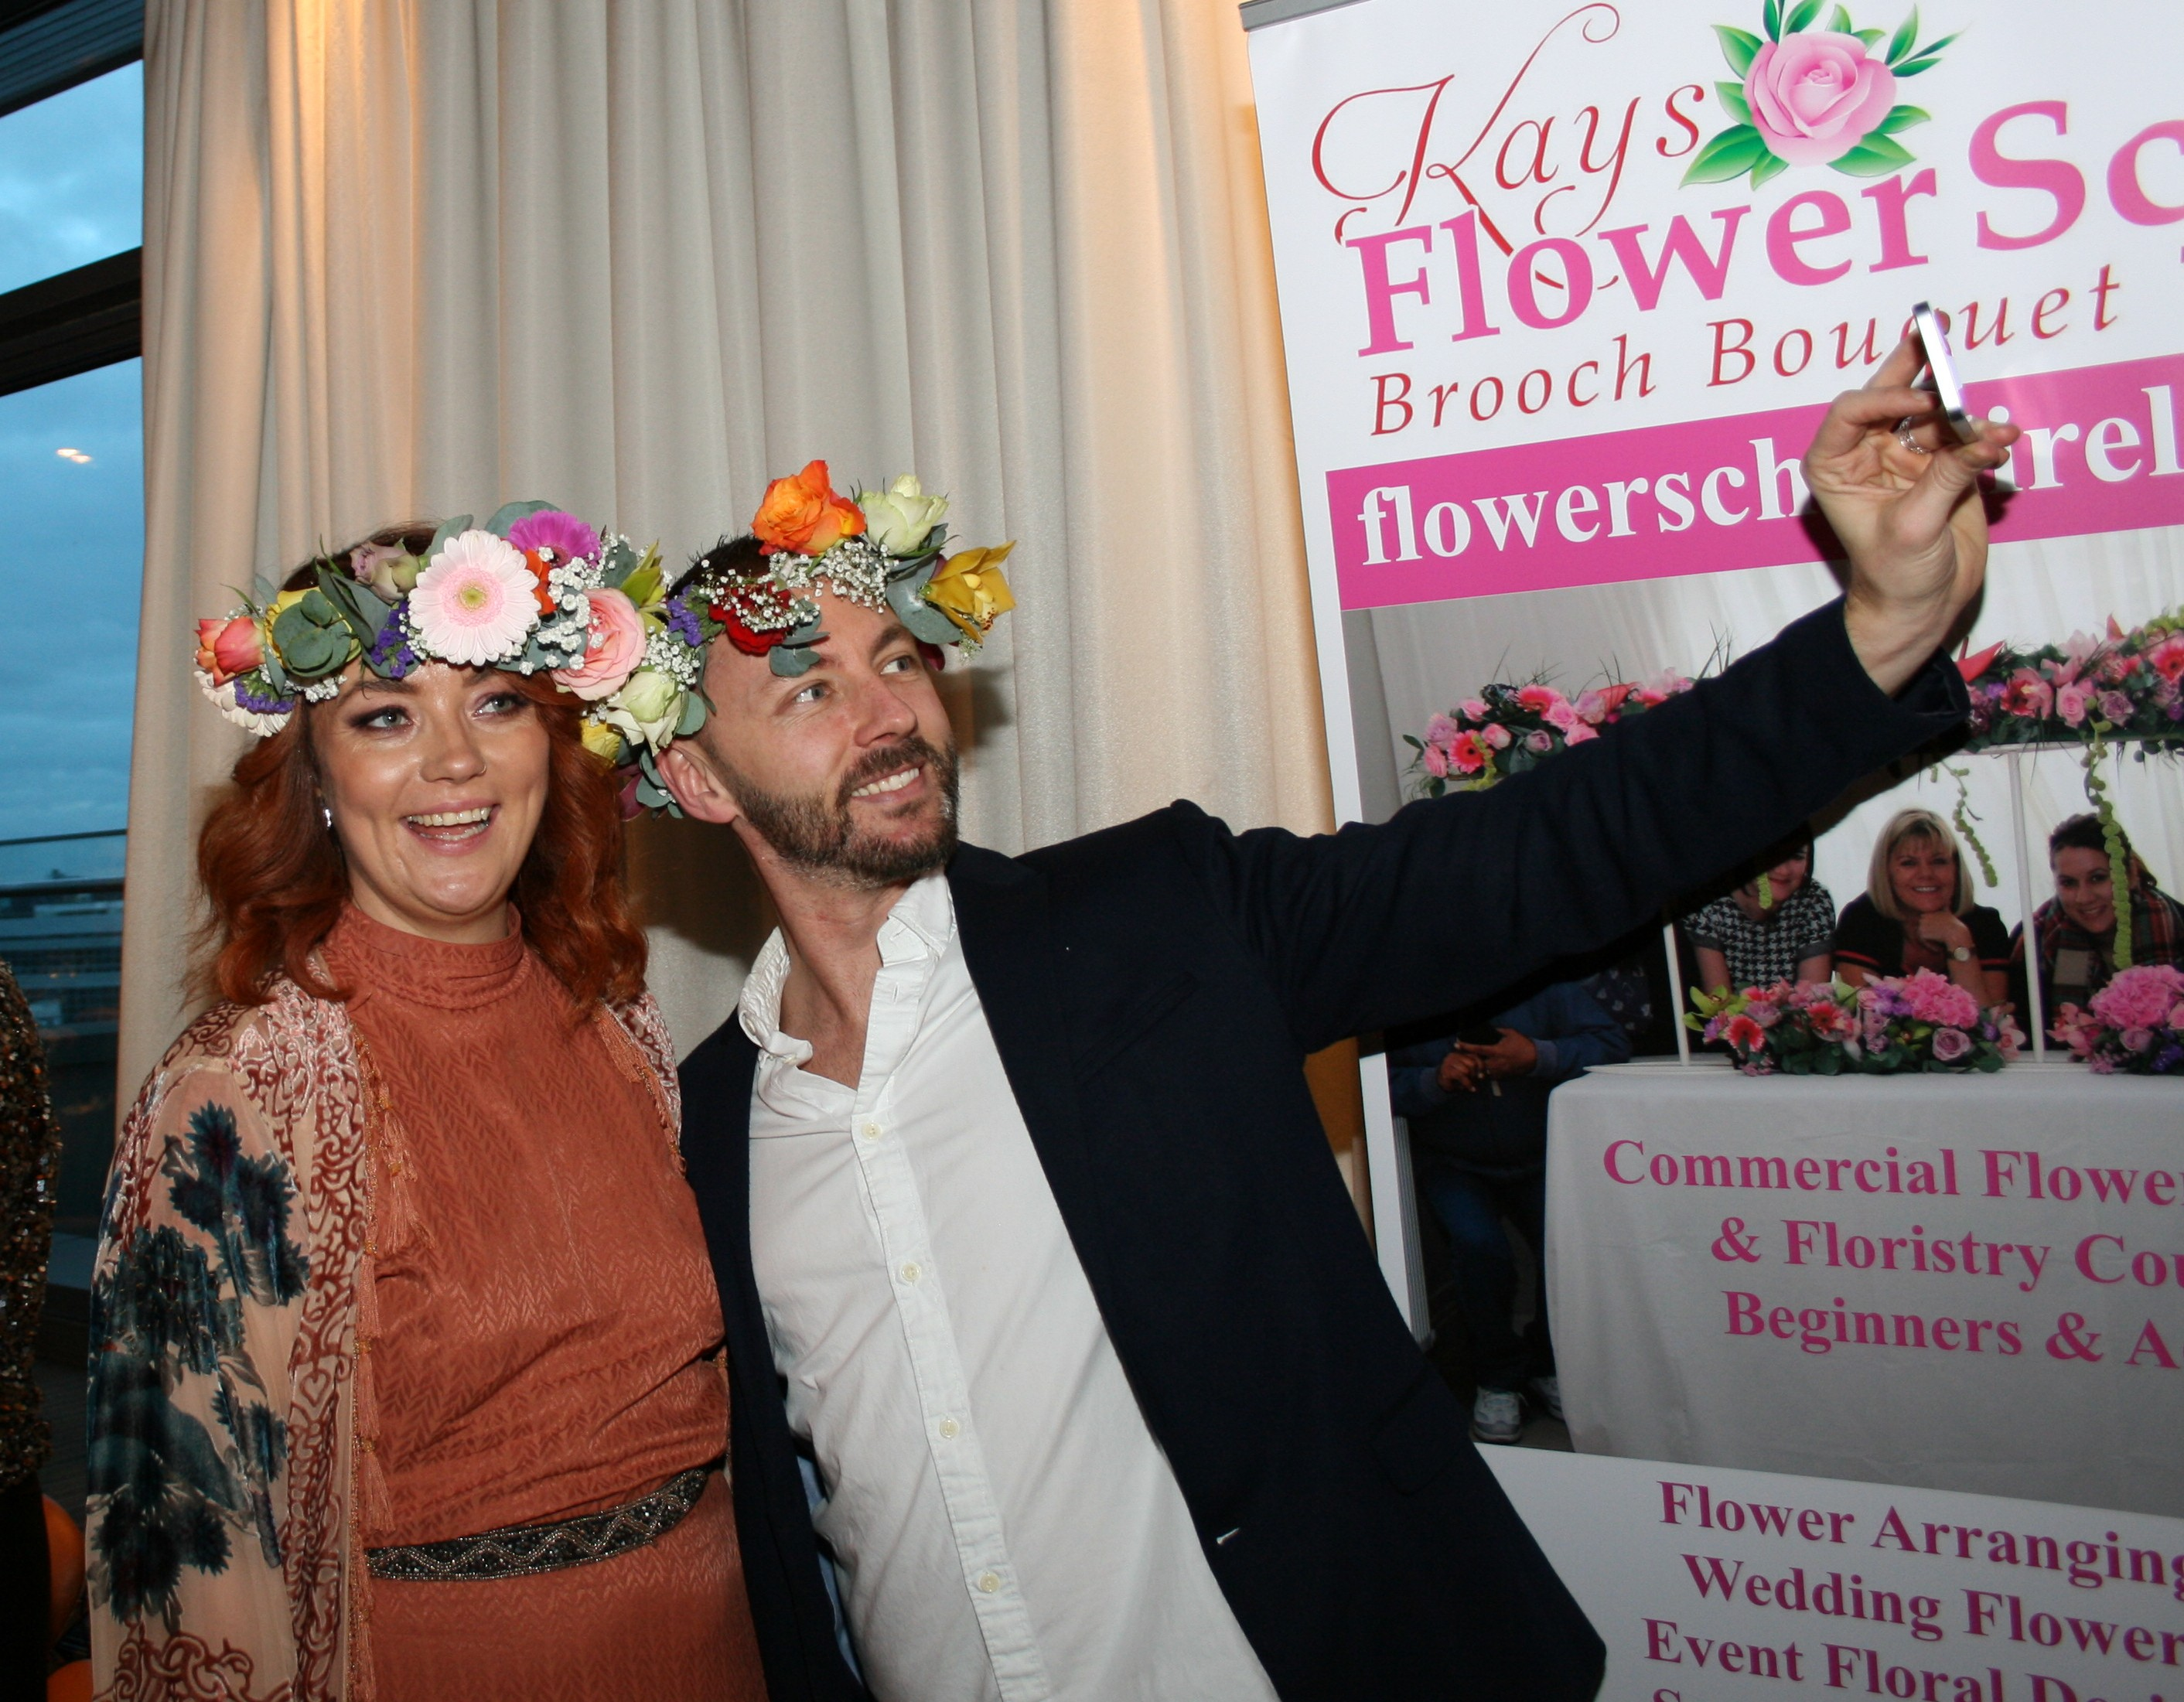 Flower Crown Party at Kays Flower school